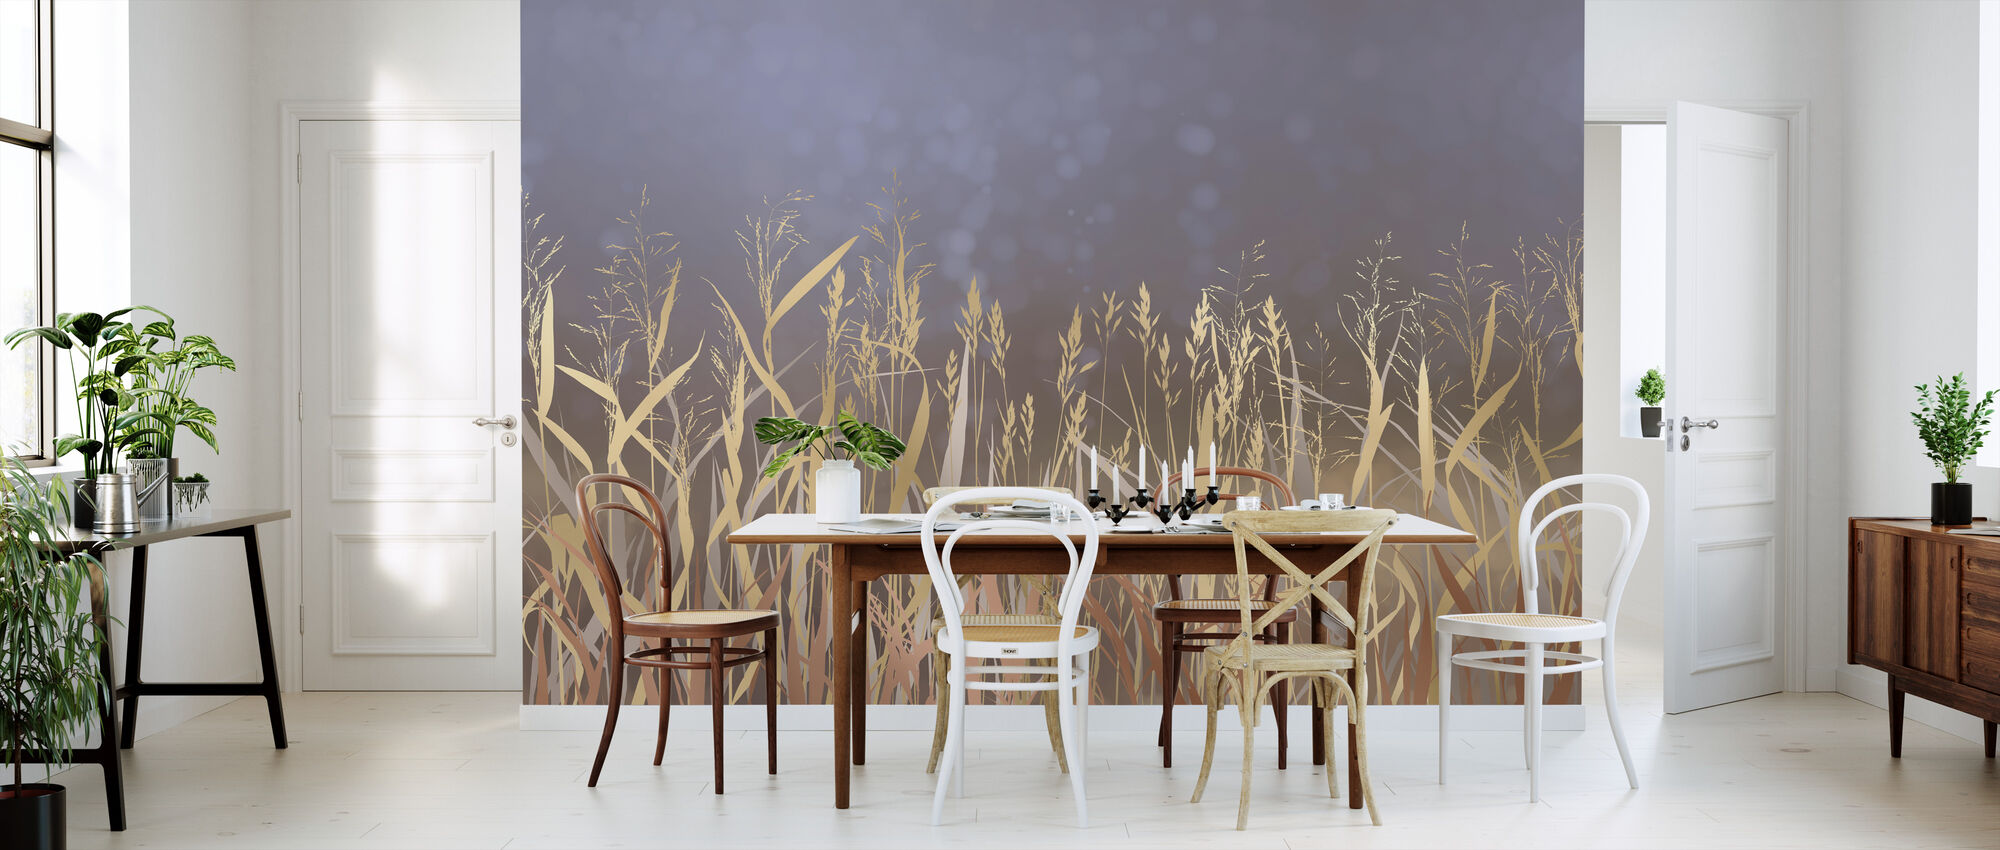 Lightening Grass I - Wallpaper - Kitchen